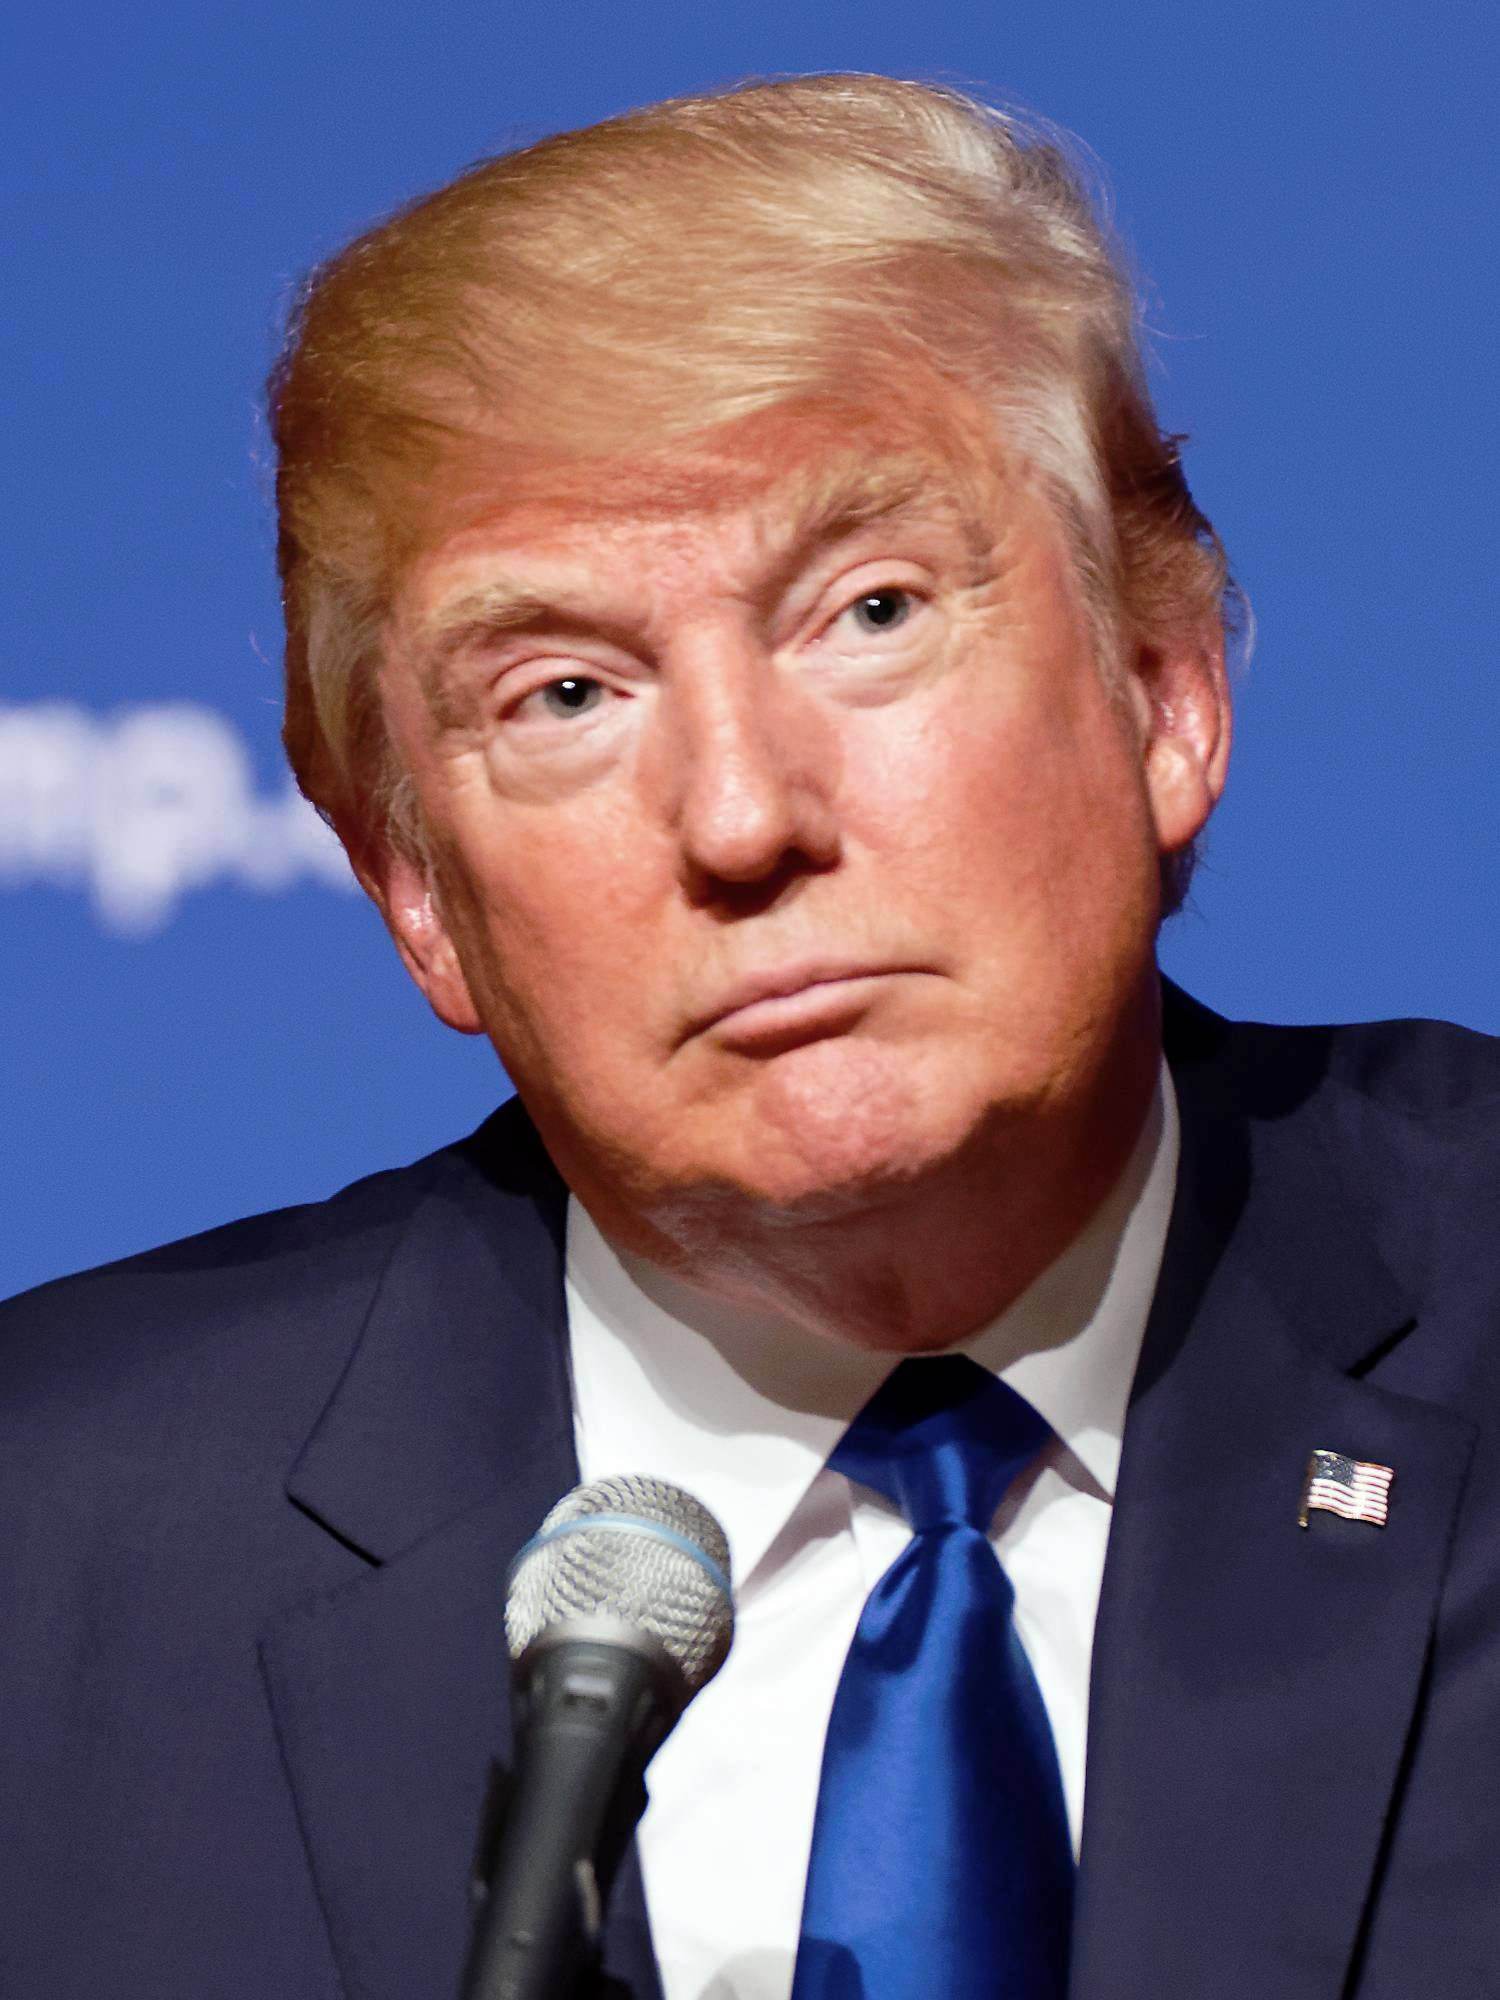 Photo of Donald Trump: American business magnate, television personality, author and politician